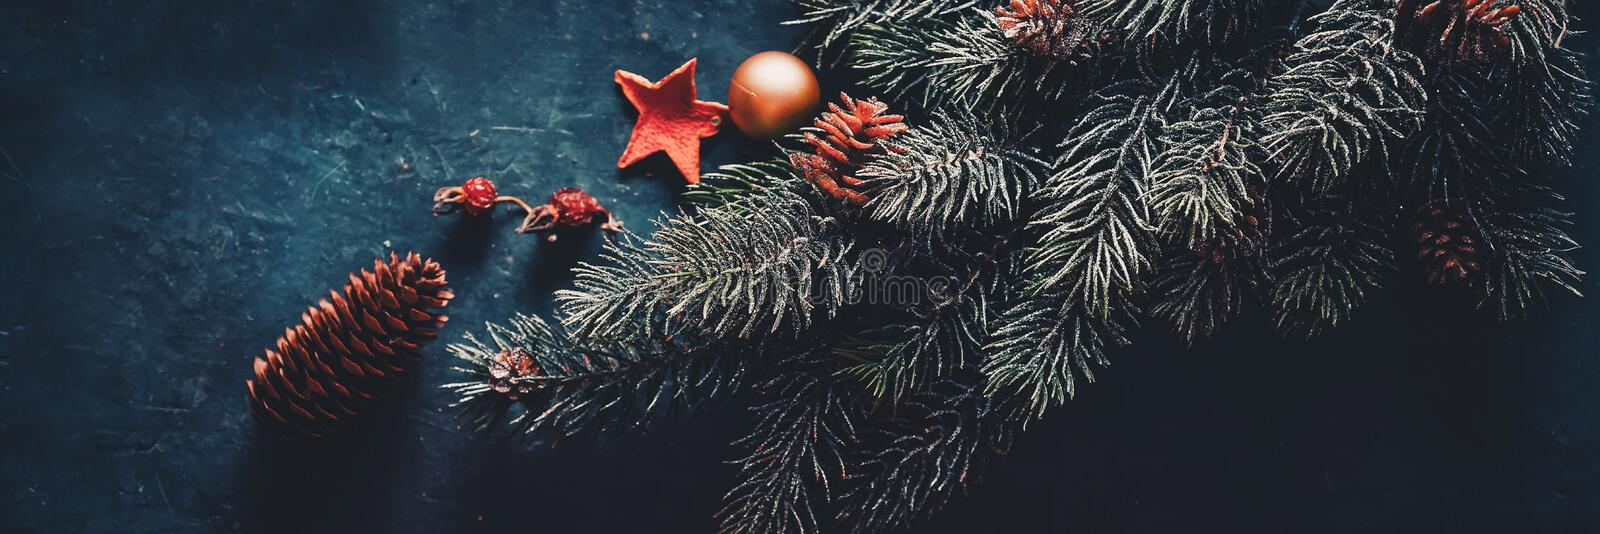 Christmas fir tree, decorations on a dark background. Banner stock photos